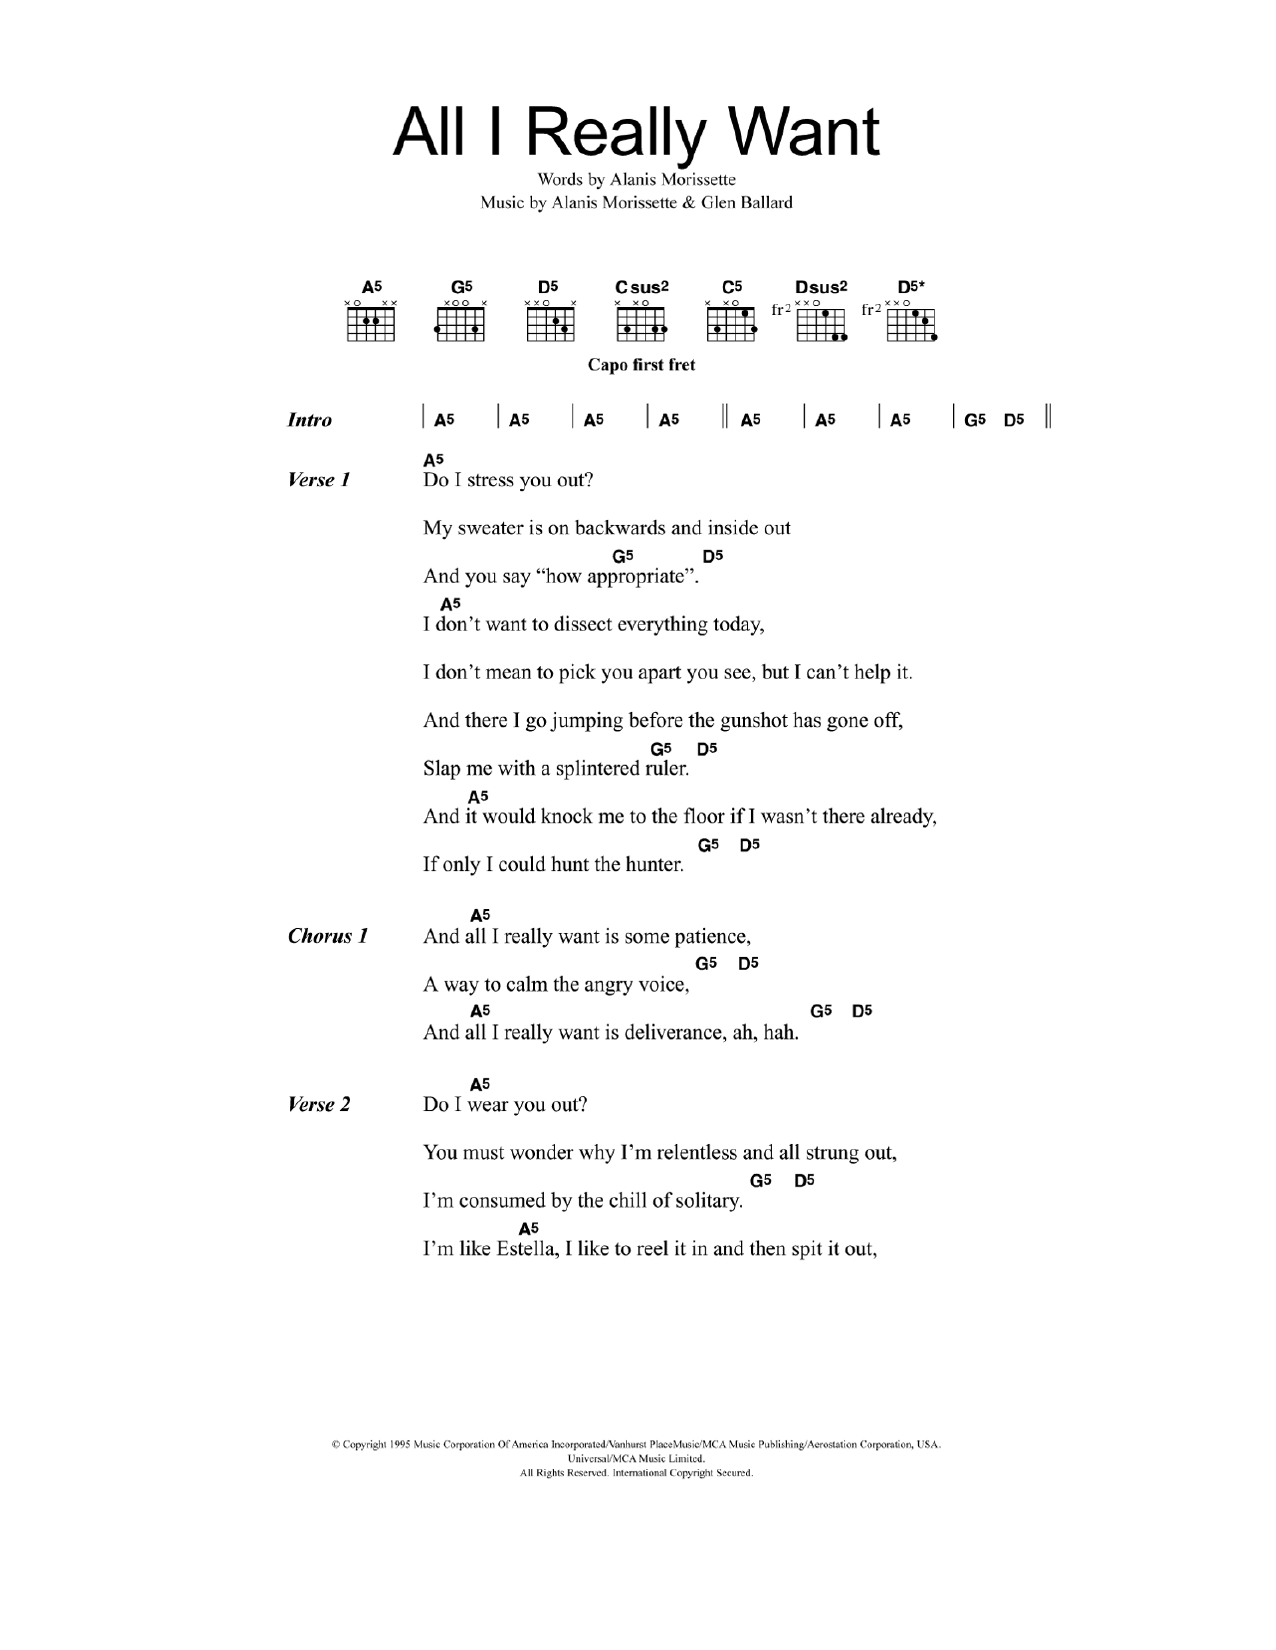 All I Really Want Sheet Music Alanis Morissette Lyrics Chords